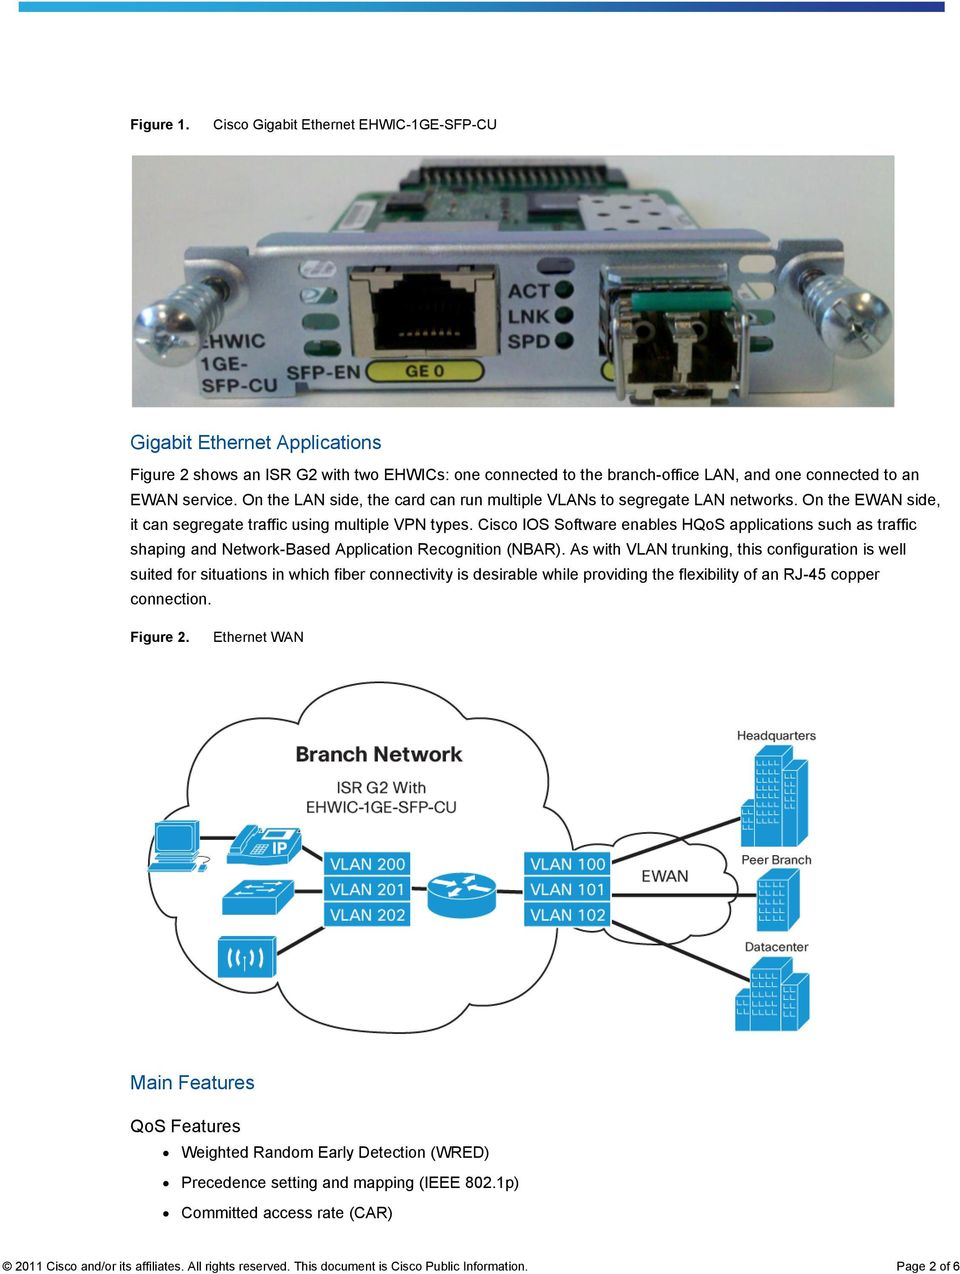 Cisco IOS Software enables HQoS applications such as traffic shaping and Network-Based Application Recognition (NBAR).